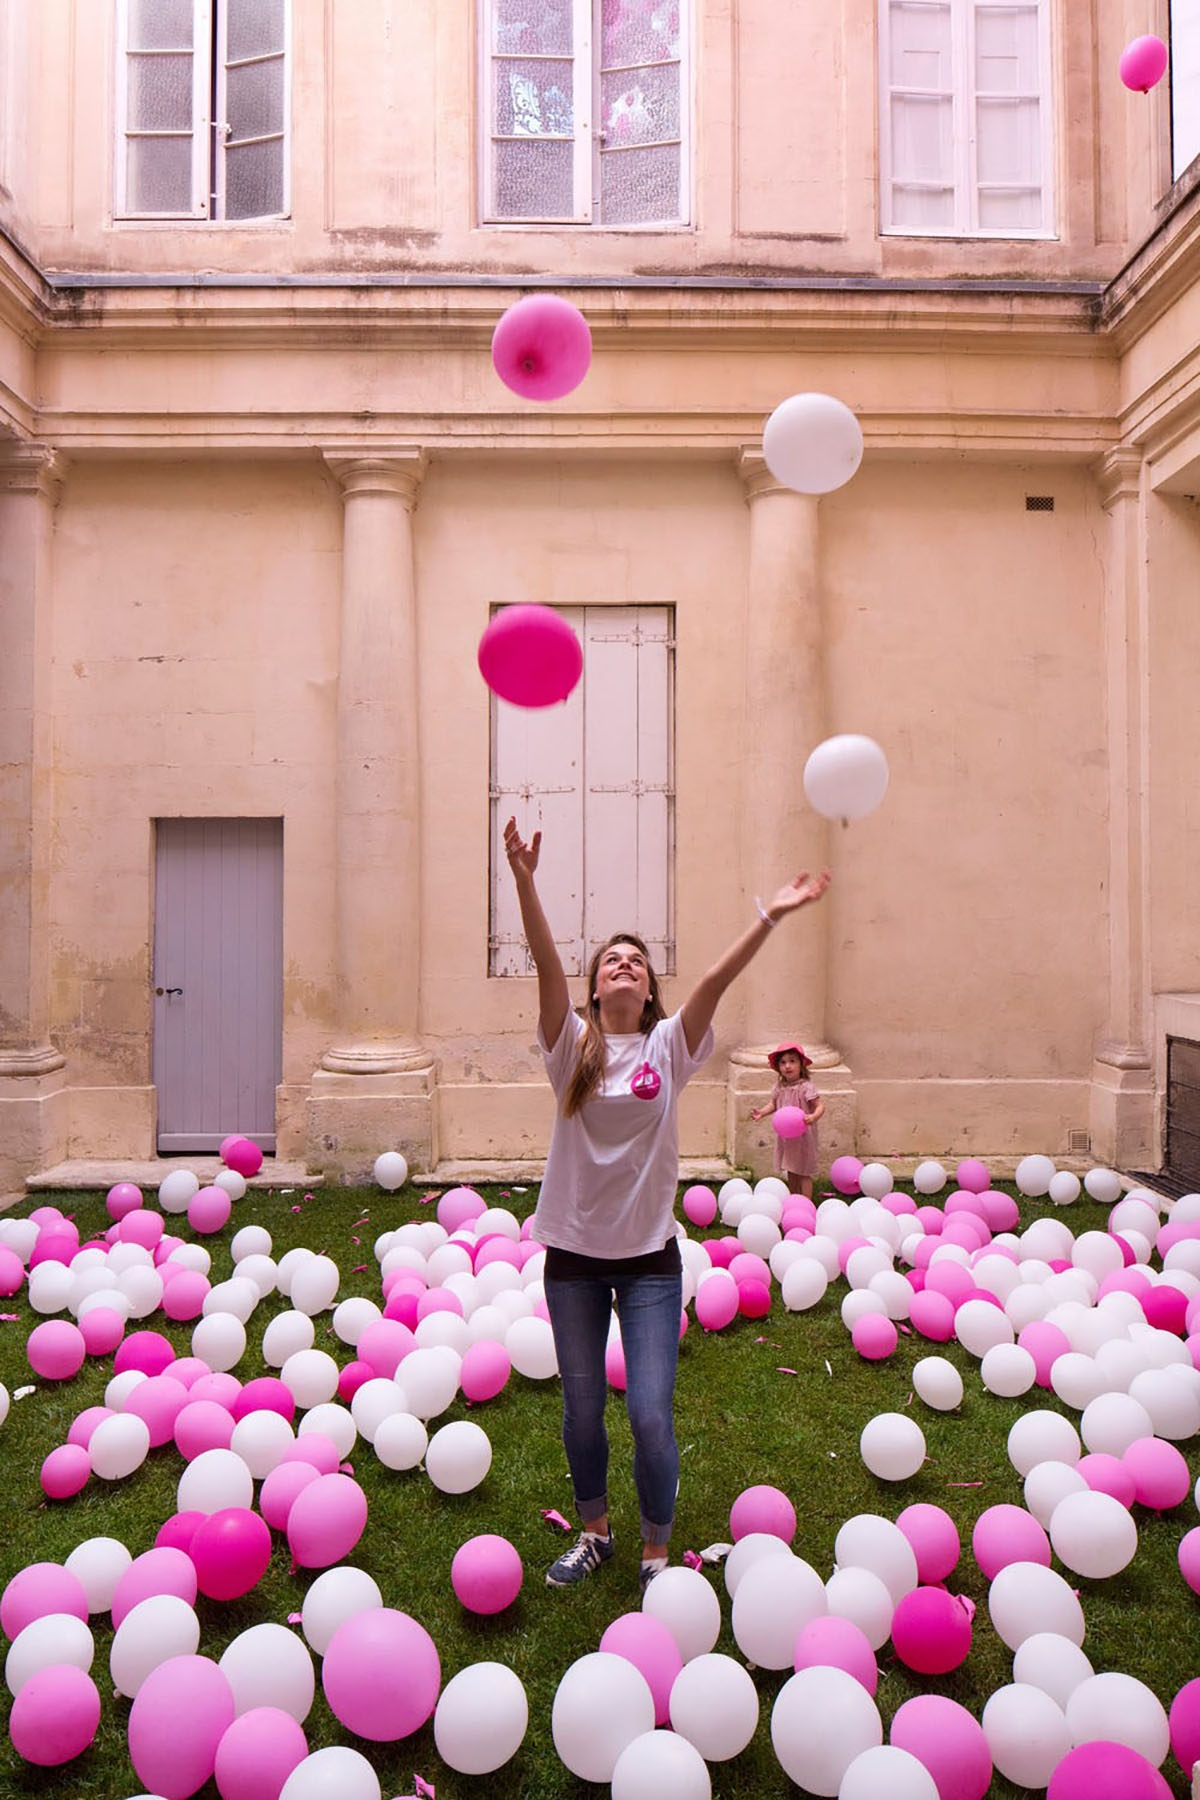 the-tenth-spring-installation-at-the-festival-des-architectures-vives-in-france-05